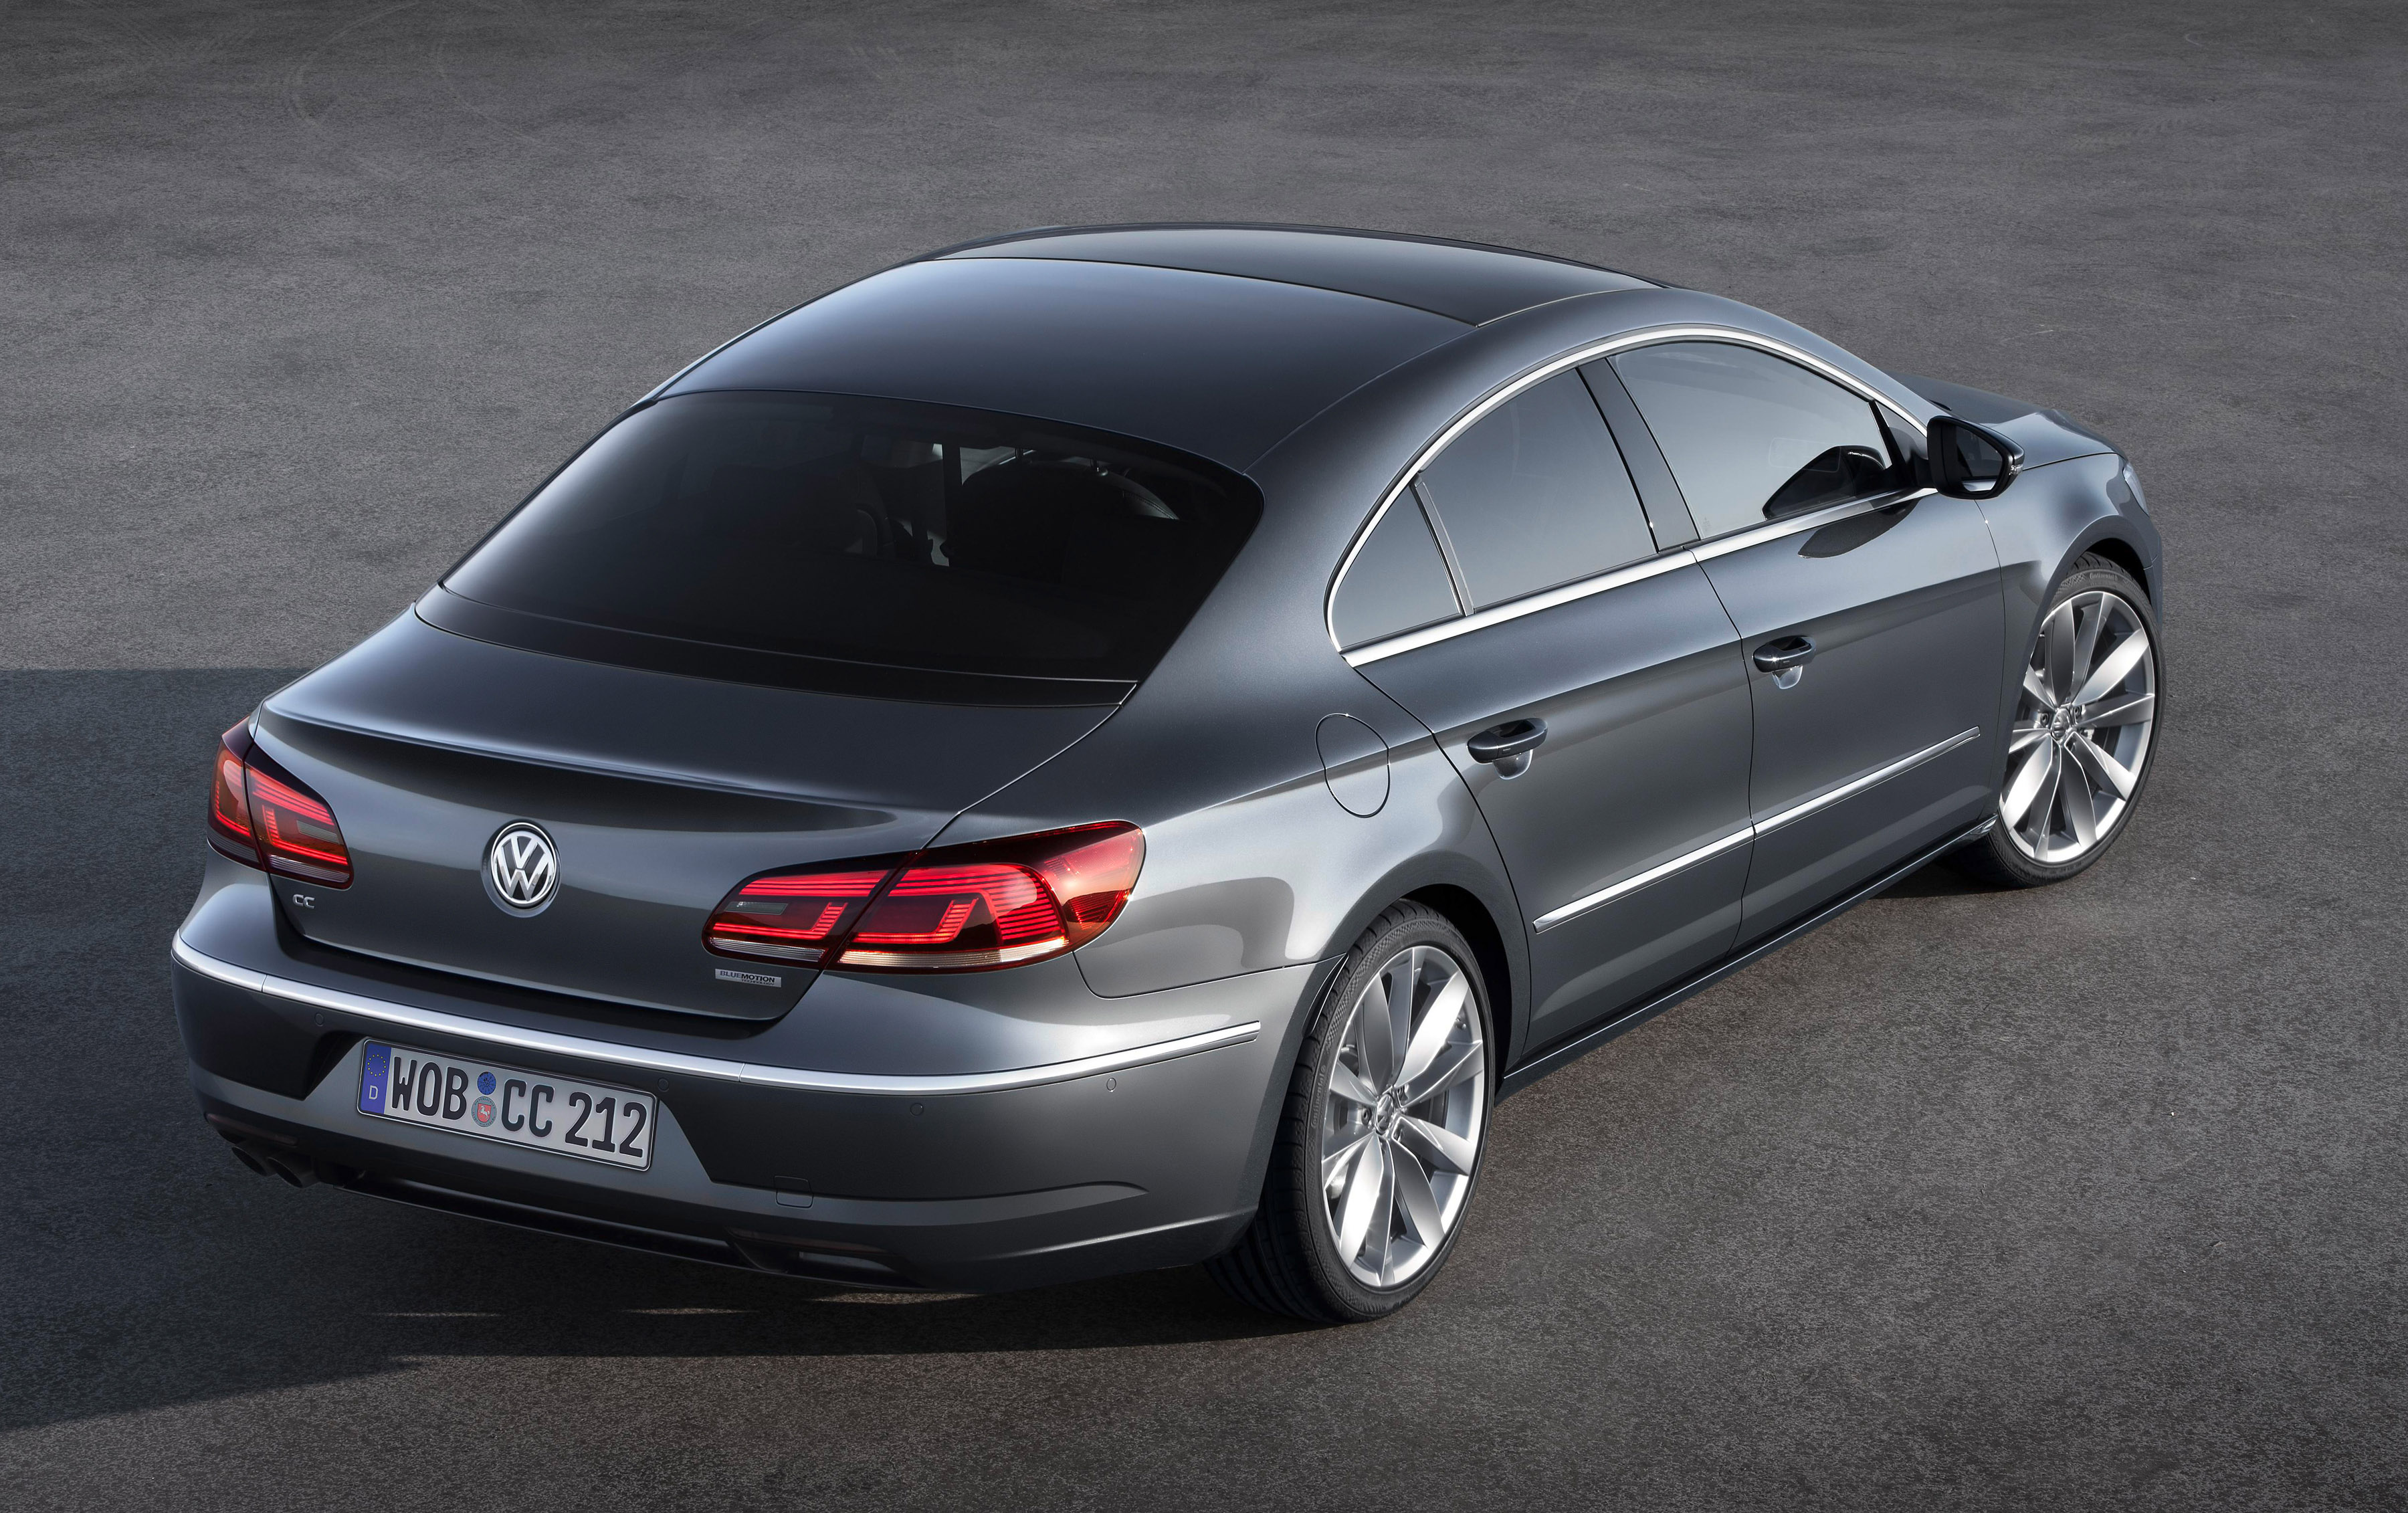 drive active impressive auto and volkswagen coupe security provides the vw dr lux expert array an passive features issues terms of cc test in our safety